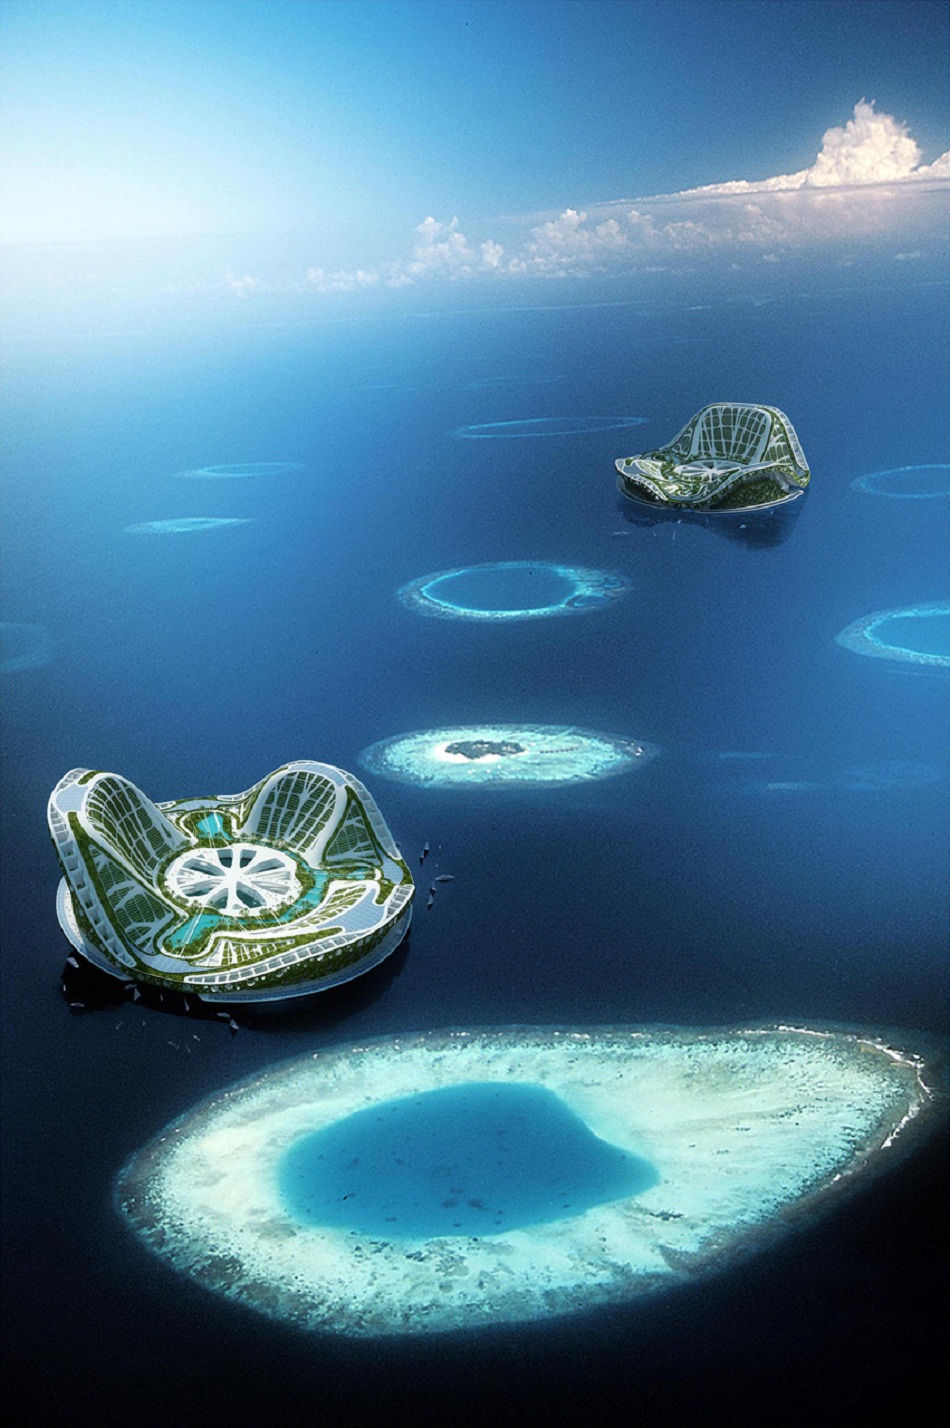 """""""The Lilypad, by Vincent Callebaut, is a spectacular structure, a concept for a completely self-sufficient floating city intended to provide shelter for people."""""""